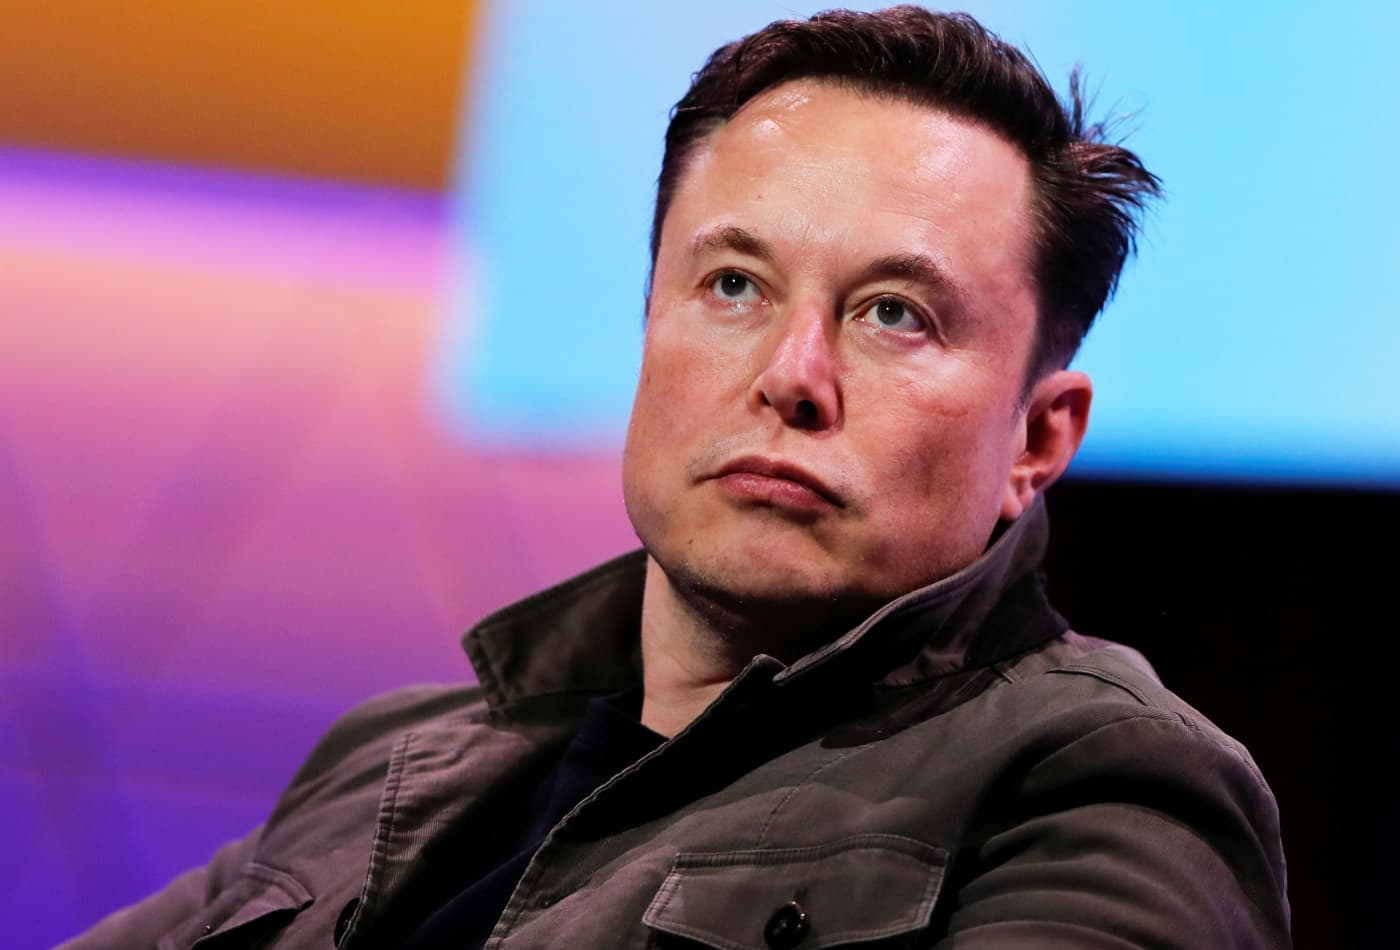 Elon Musk to face trial over 'pedo guy' tweets after court denies motion to dismiss defamation lawsuit